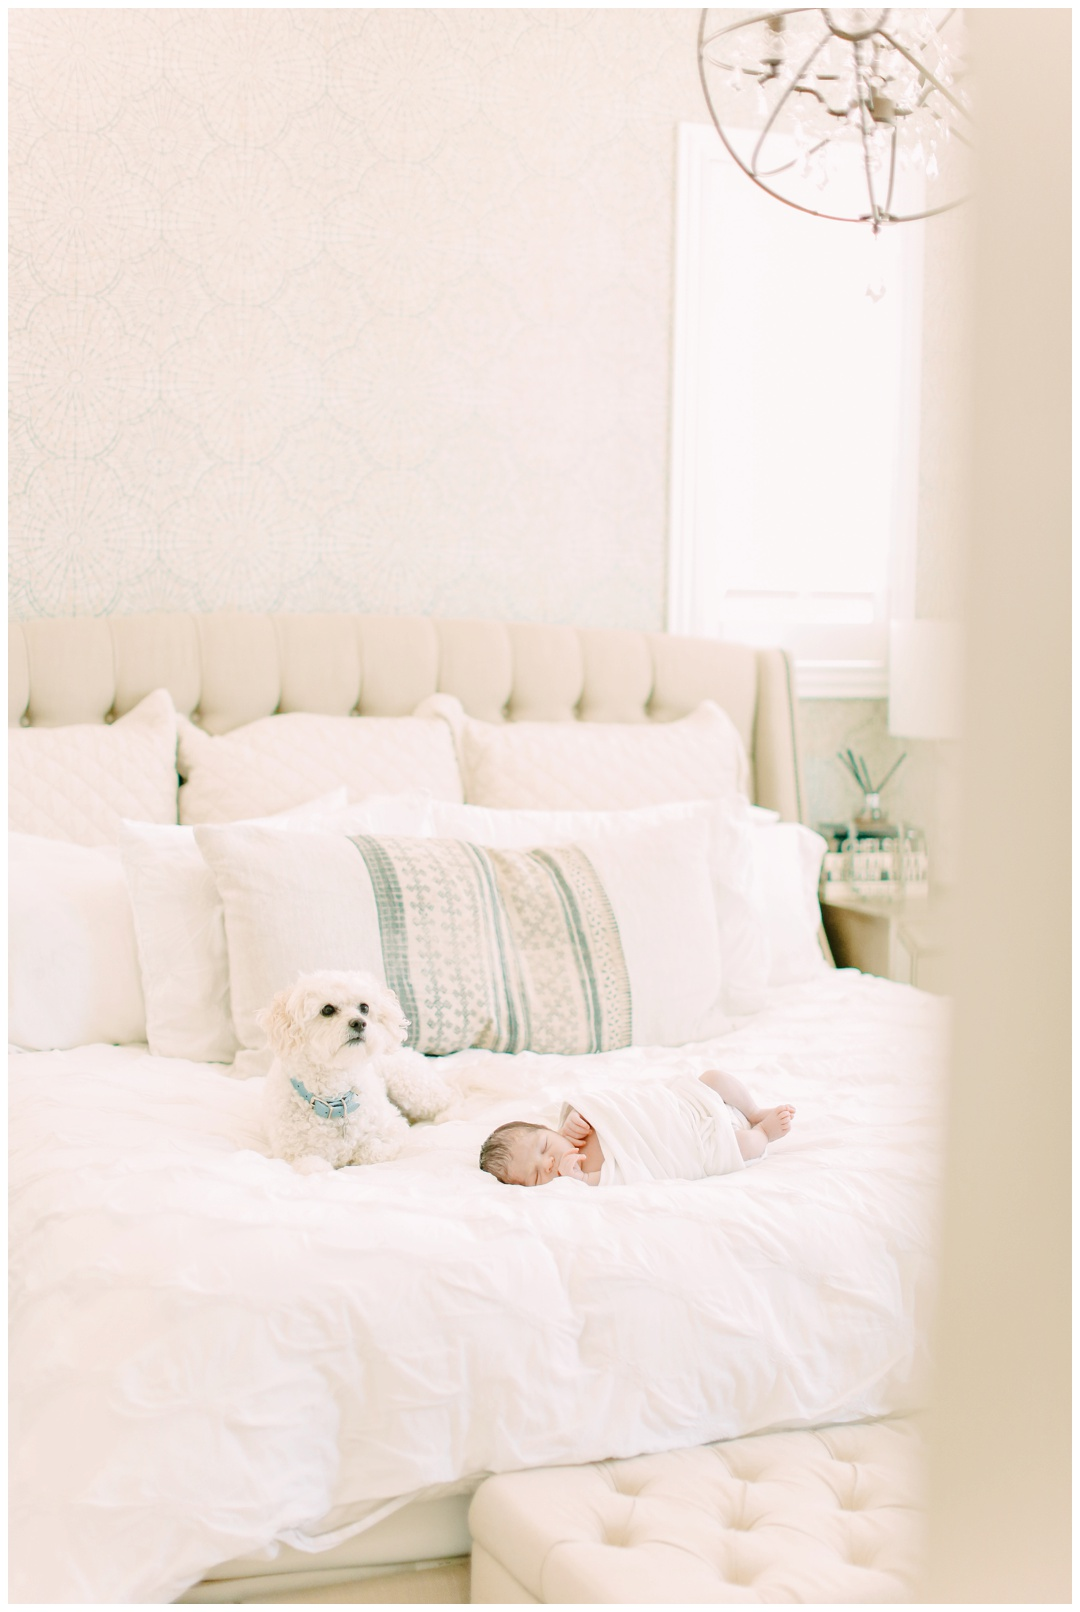 The_Garcia_Family_Lifestyle_Newport_Beach_Family_Photographer_Orange_County_Newborn_Photography_Cori_Kleckner_Photography_Orange_County_Beach_Photographer_Newborn_Photos_Session_Crystal_Cove_Session__1559.jpg